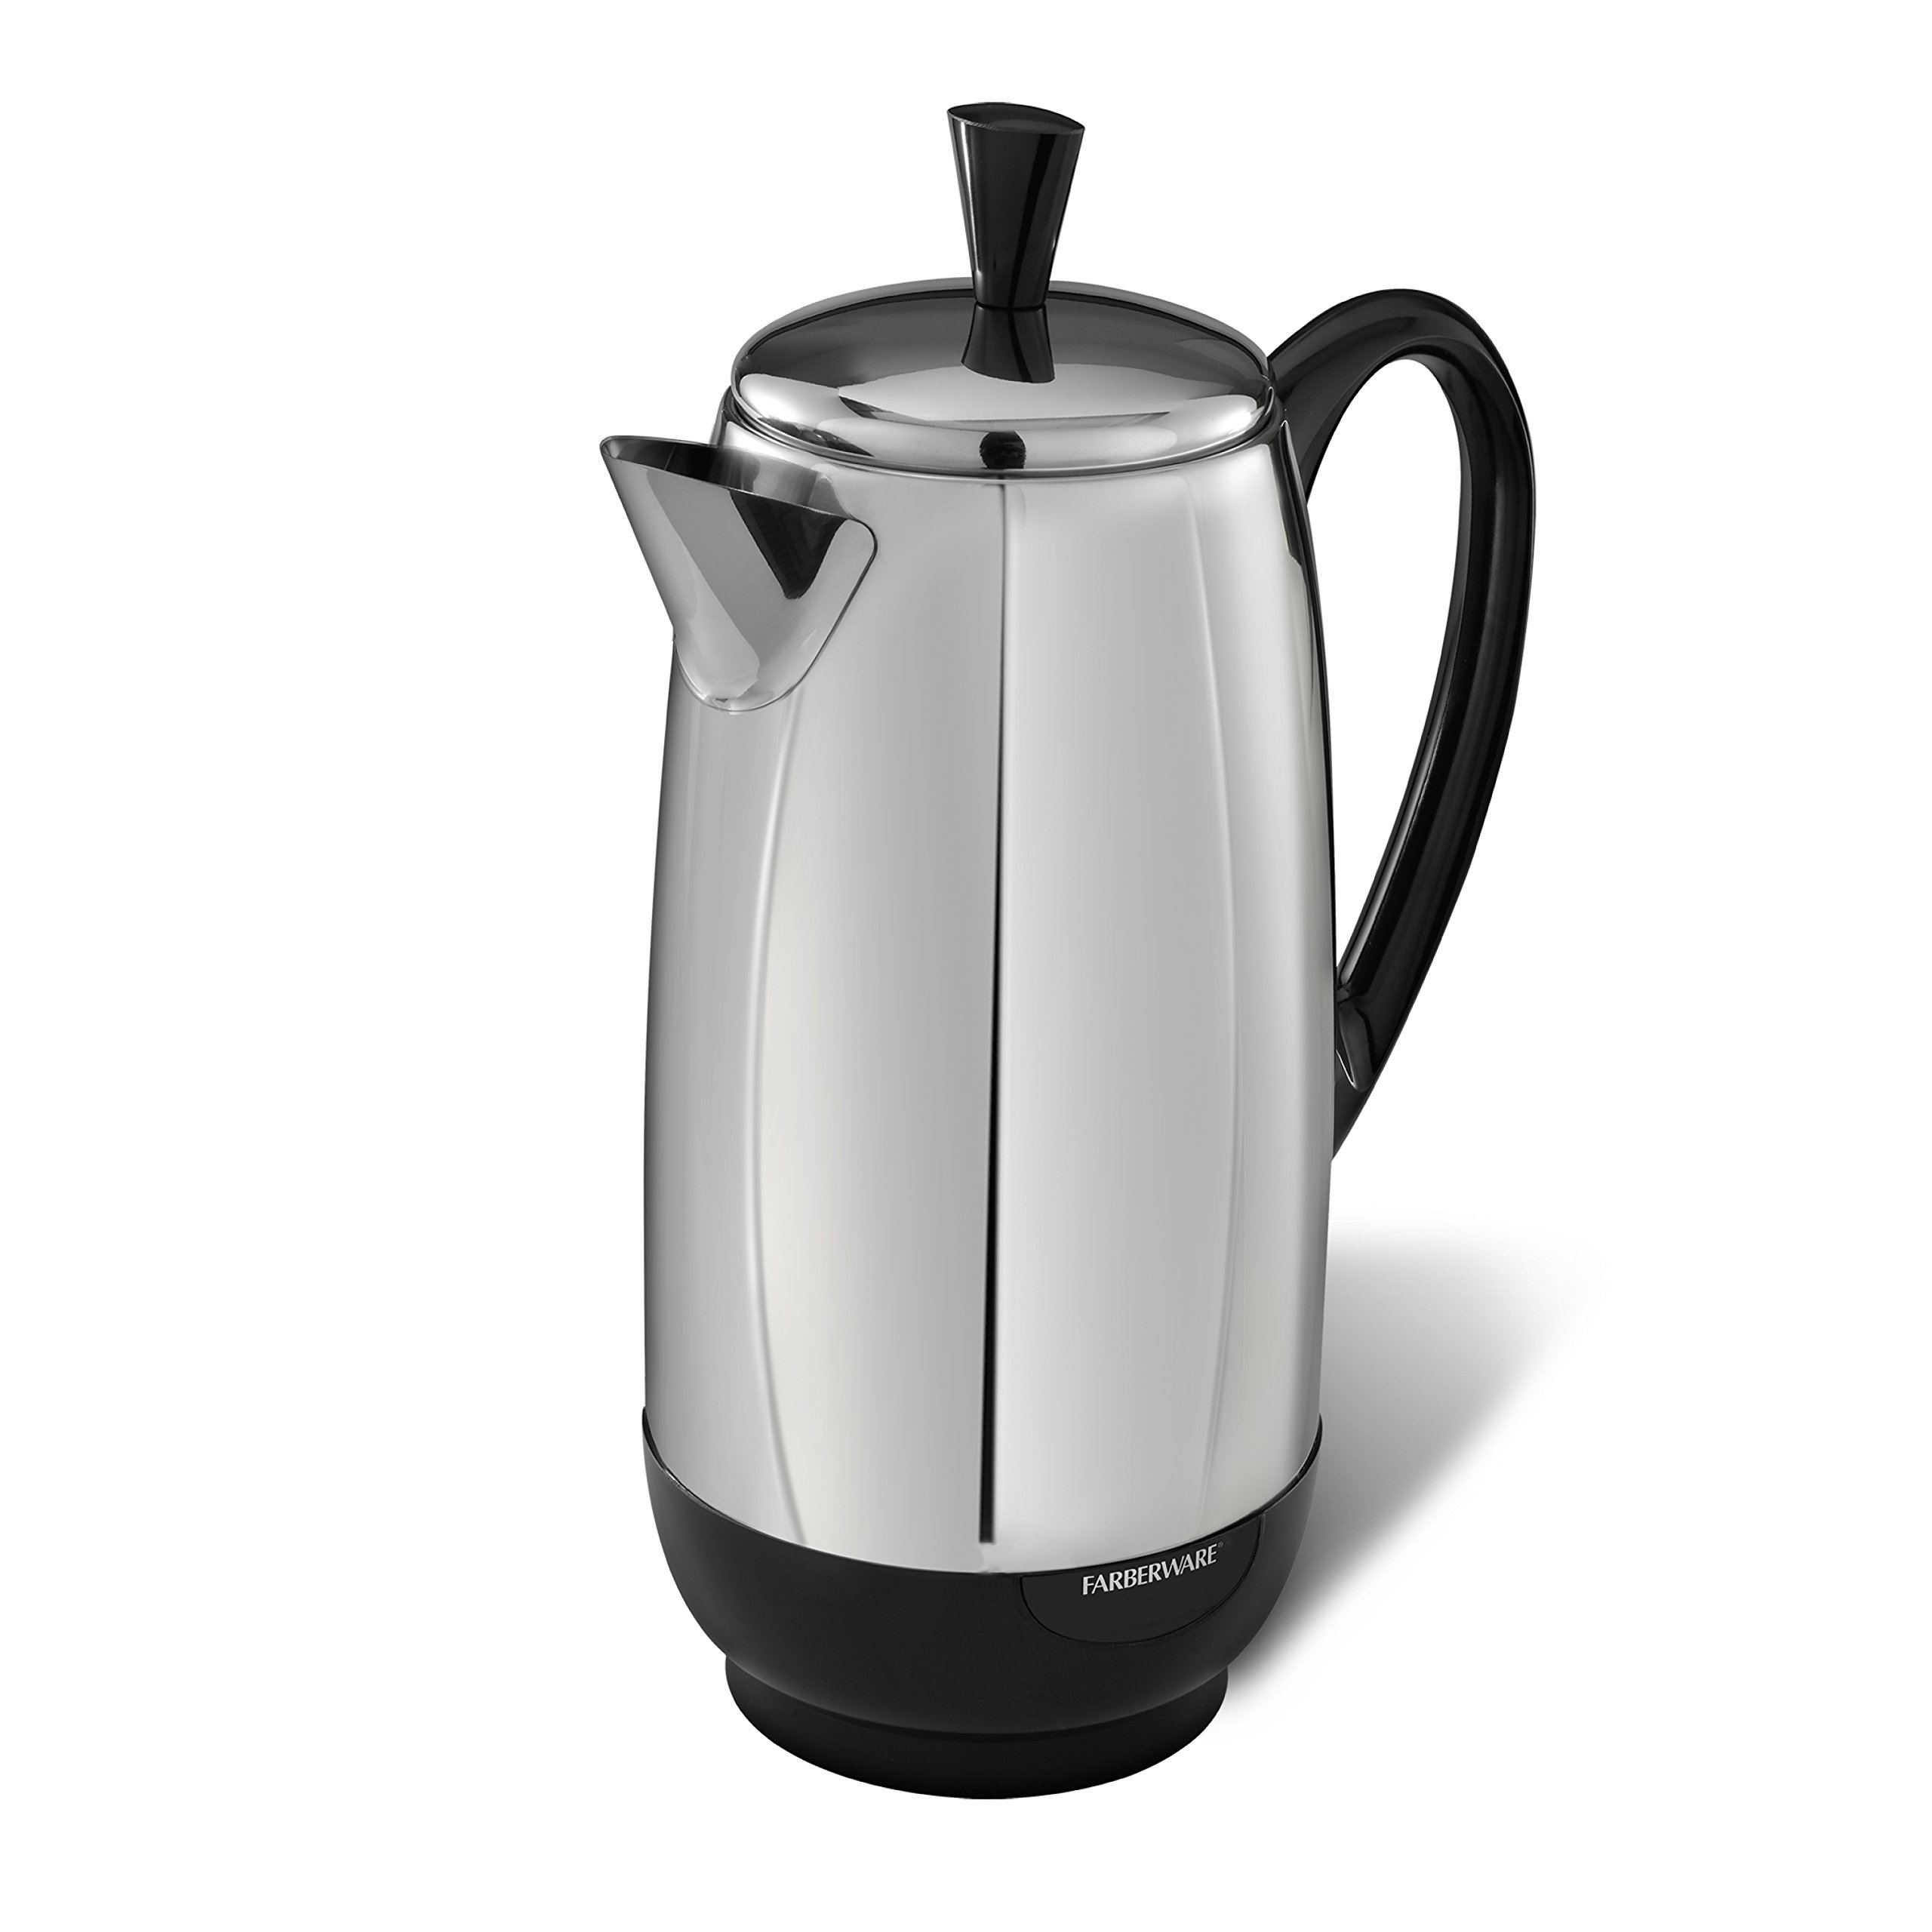 Farberware 12-Cup Percolator, Stainless Steel, FCP412 by Farberware